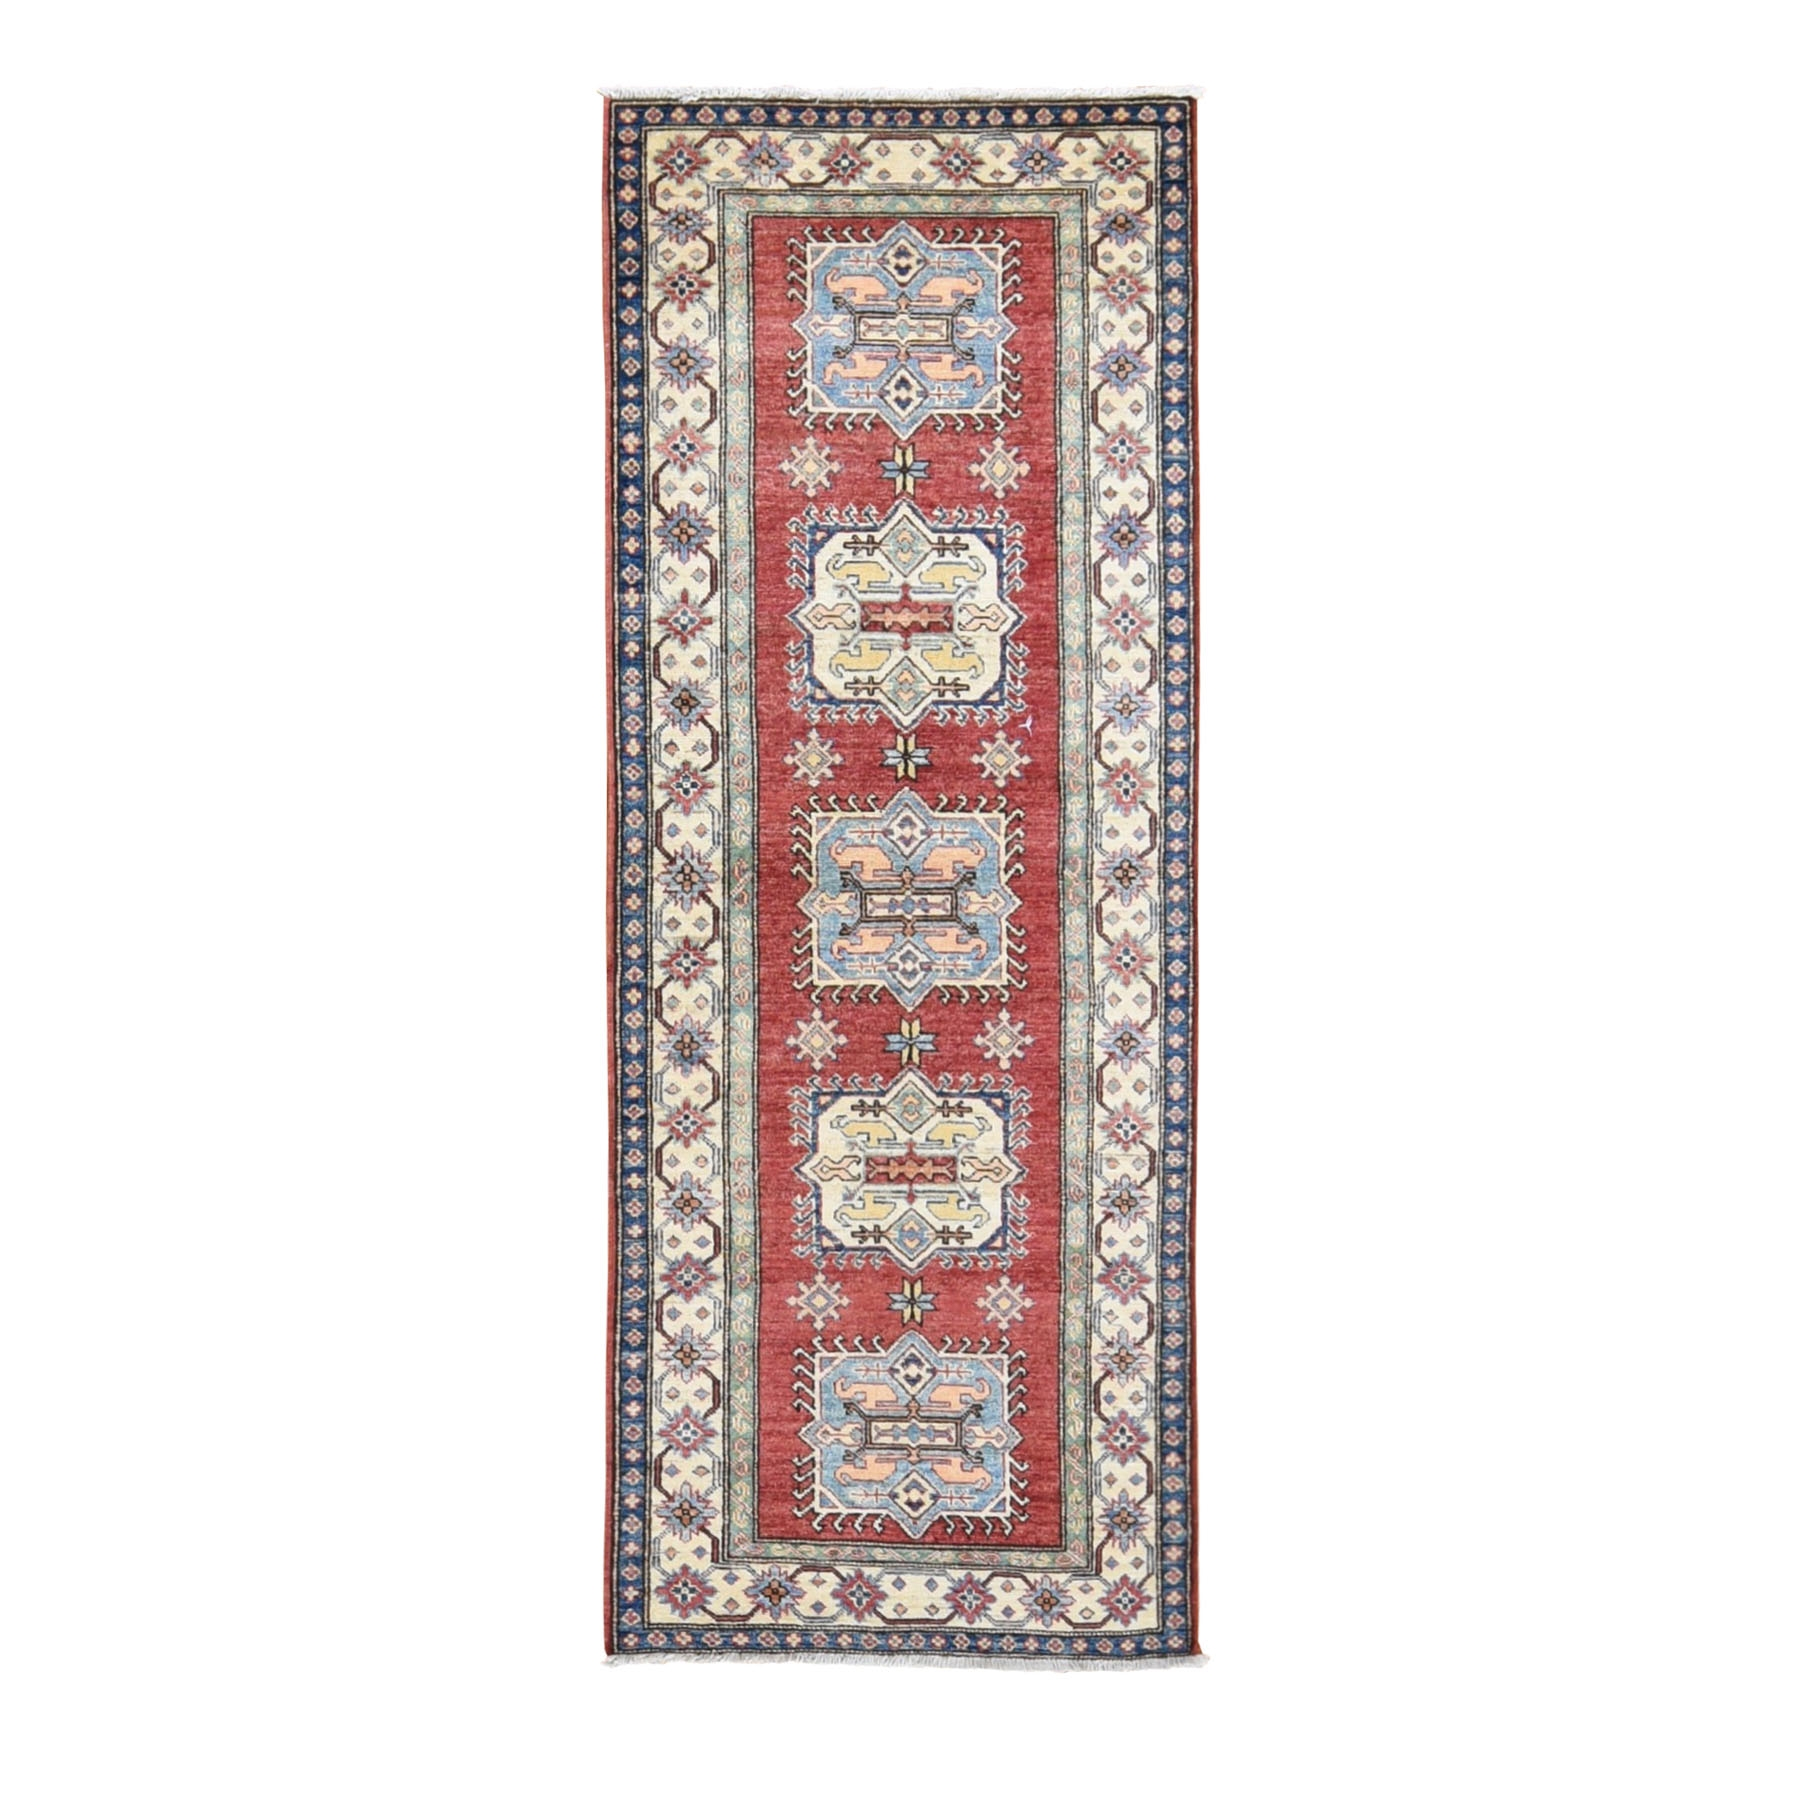 "2'9""x7'5"" Red Super Kazak Pure Wool Geometric Design Runner Hand Knotted Oriental Rug"